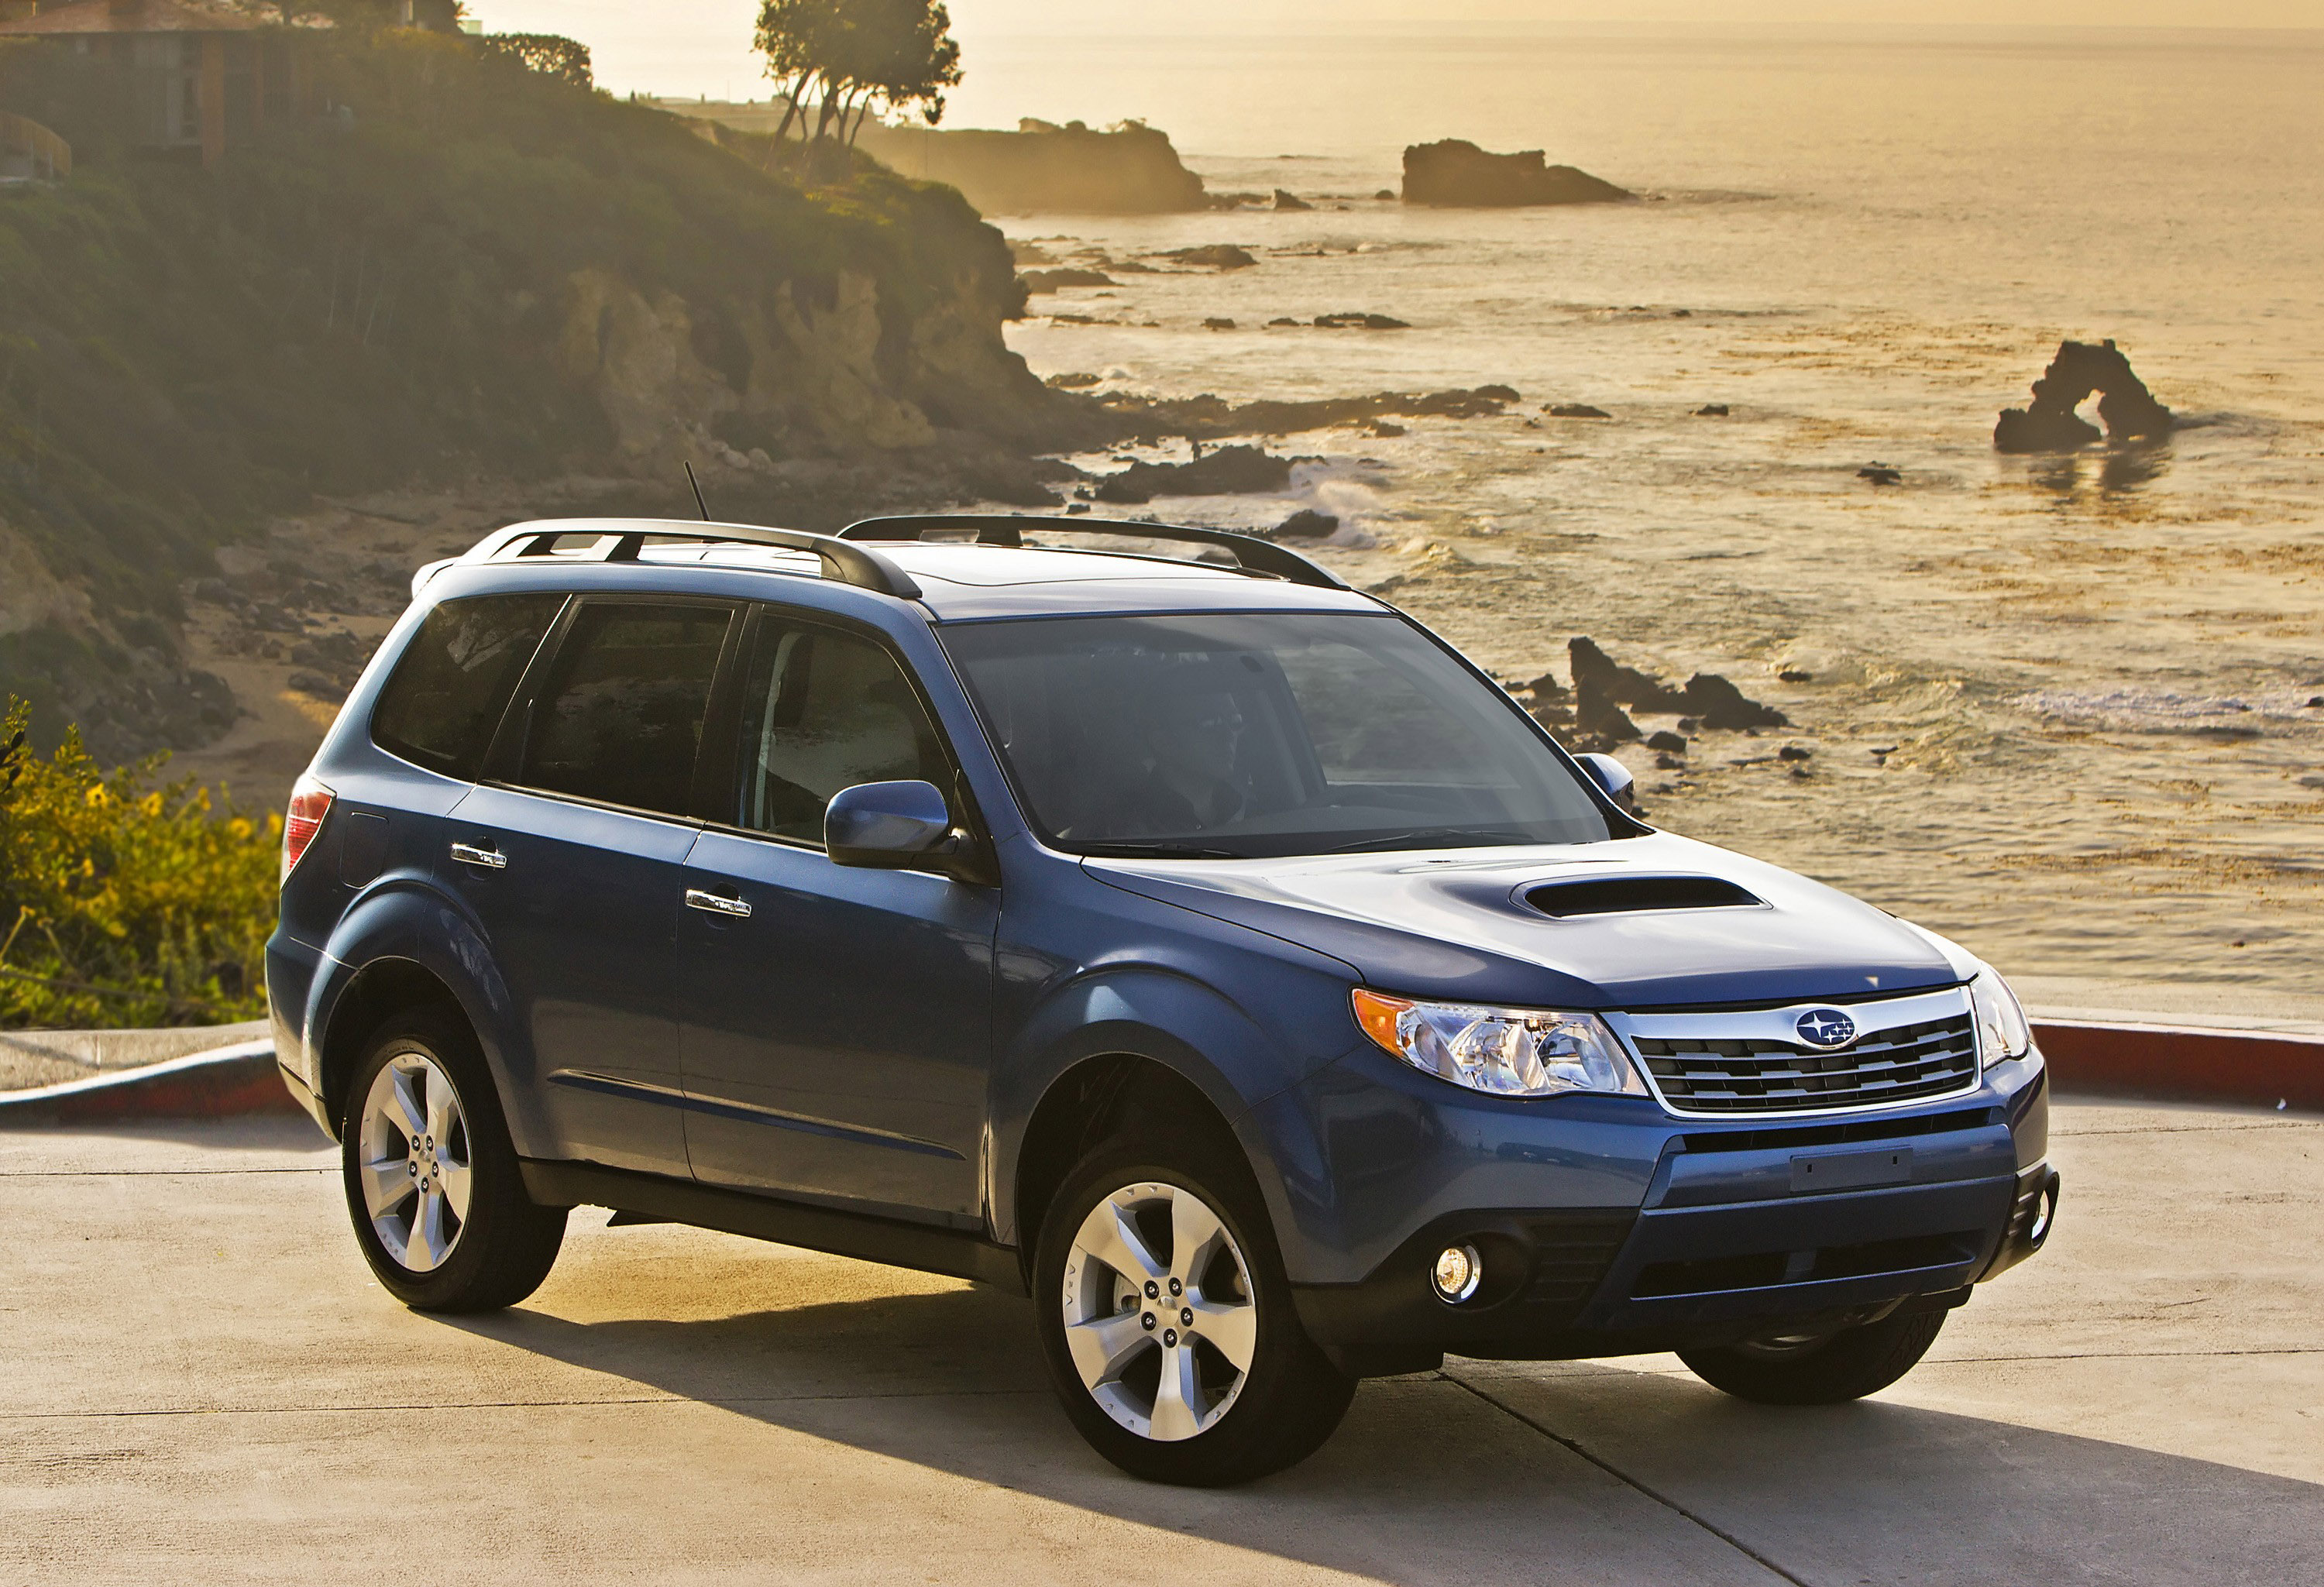 2010 Subaru Forester 2 5xt Picture 30177